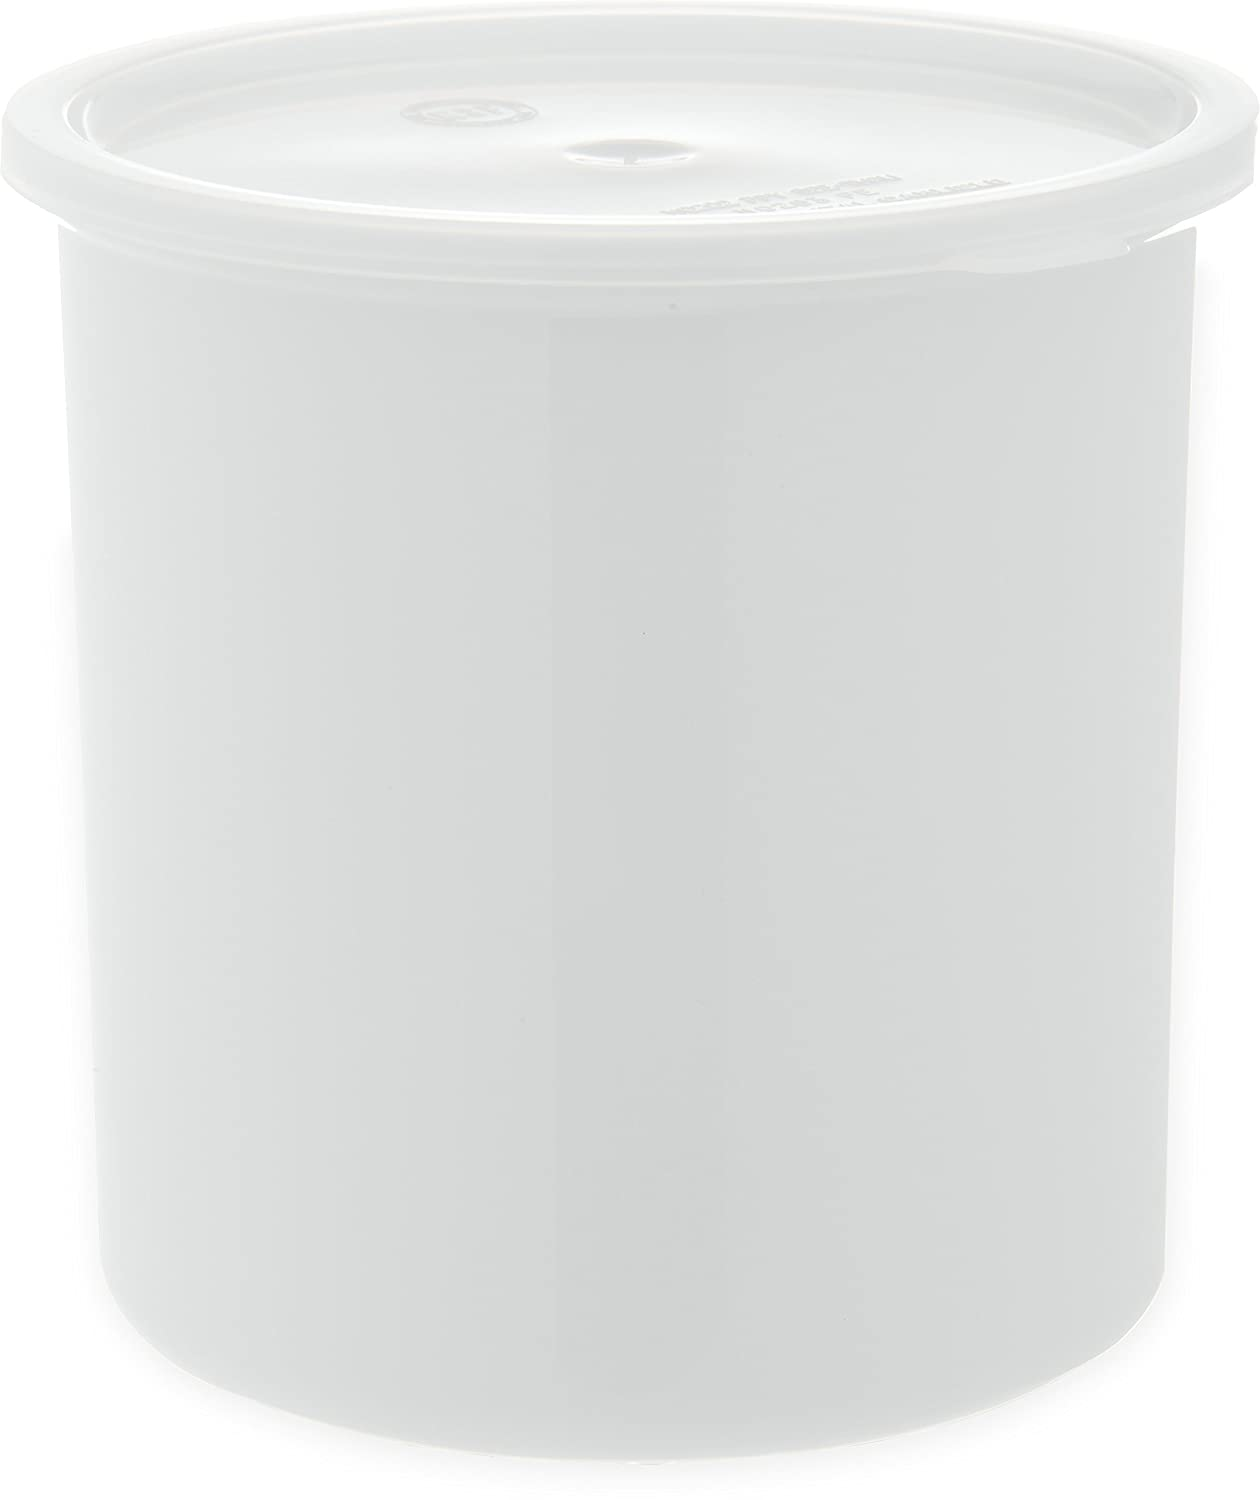 Carlisle 030202 Solid Color Commercial Round Storage Container with Lid, 2.7 Quart Capacity, White